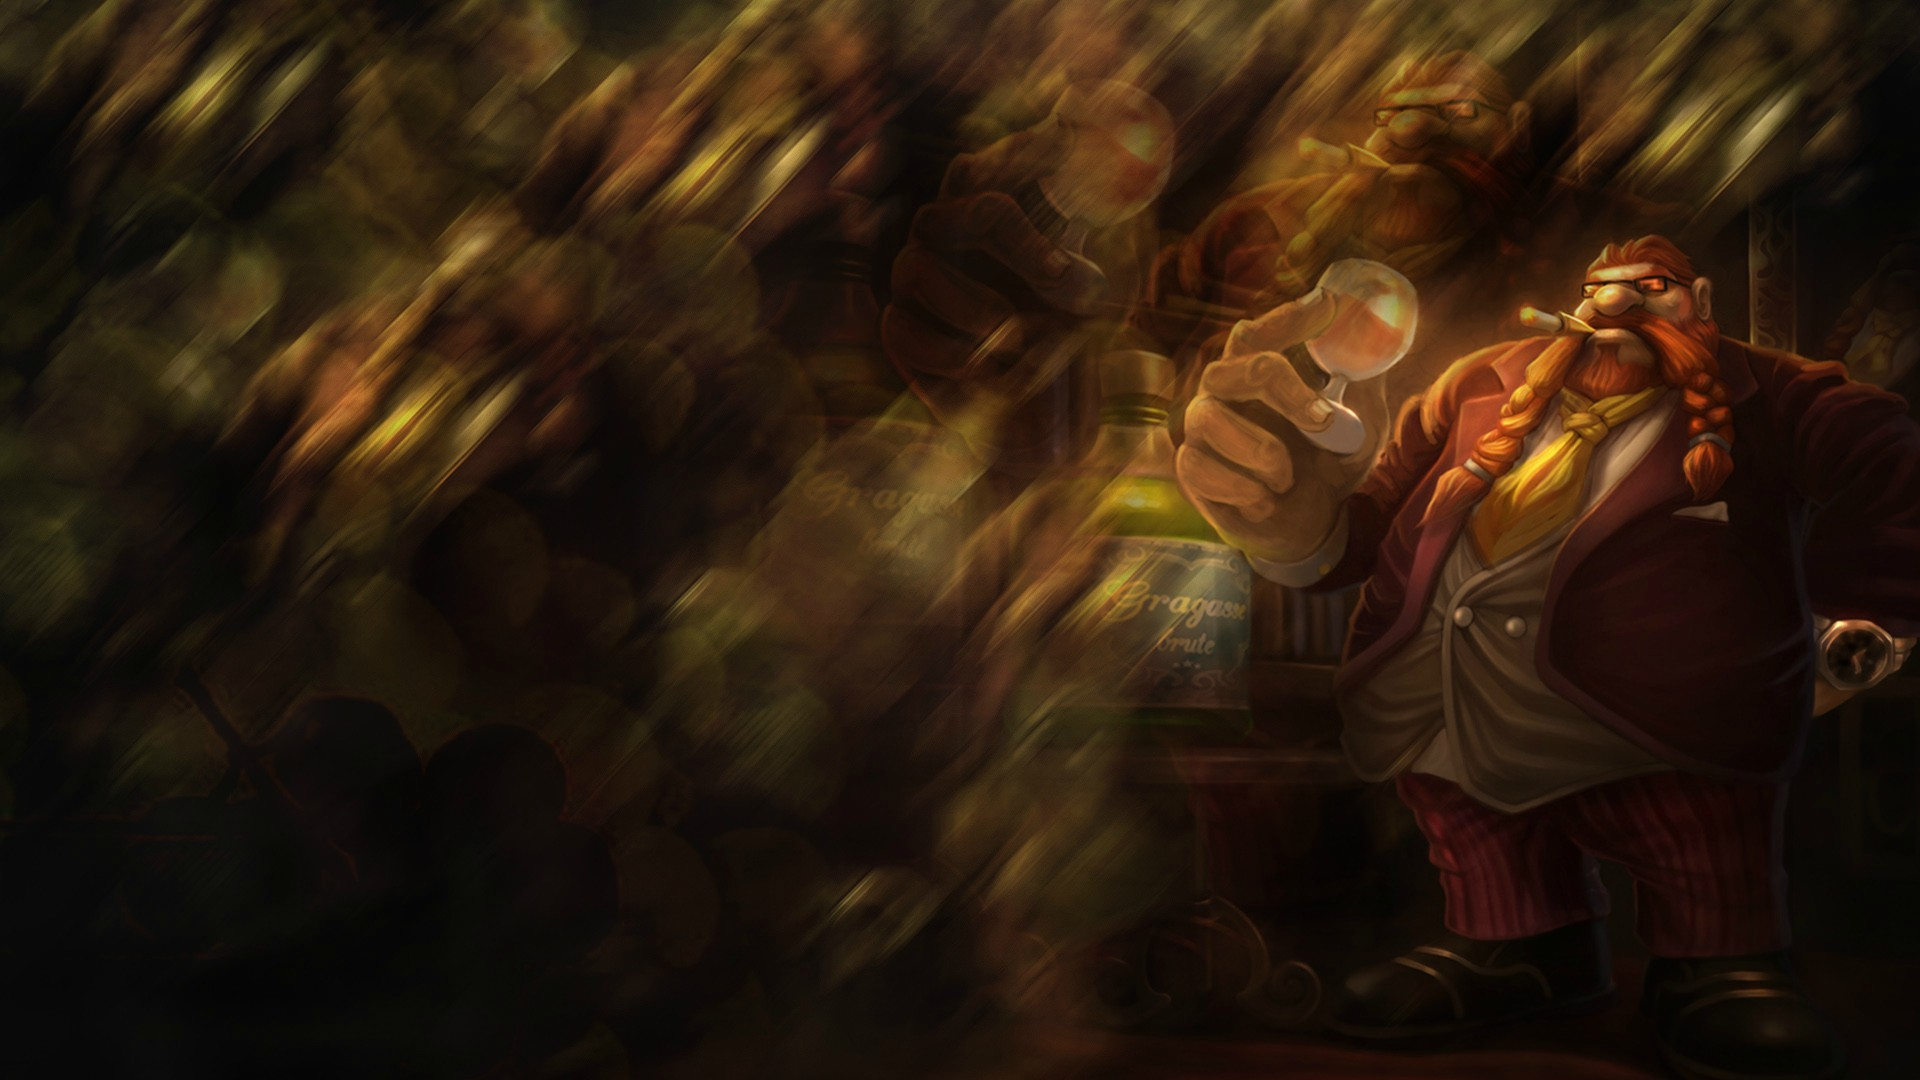 Best 69 Gragas Wallpaper on HipWallpaper Gragas Wallpaper 1920x1080